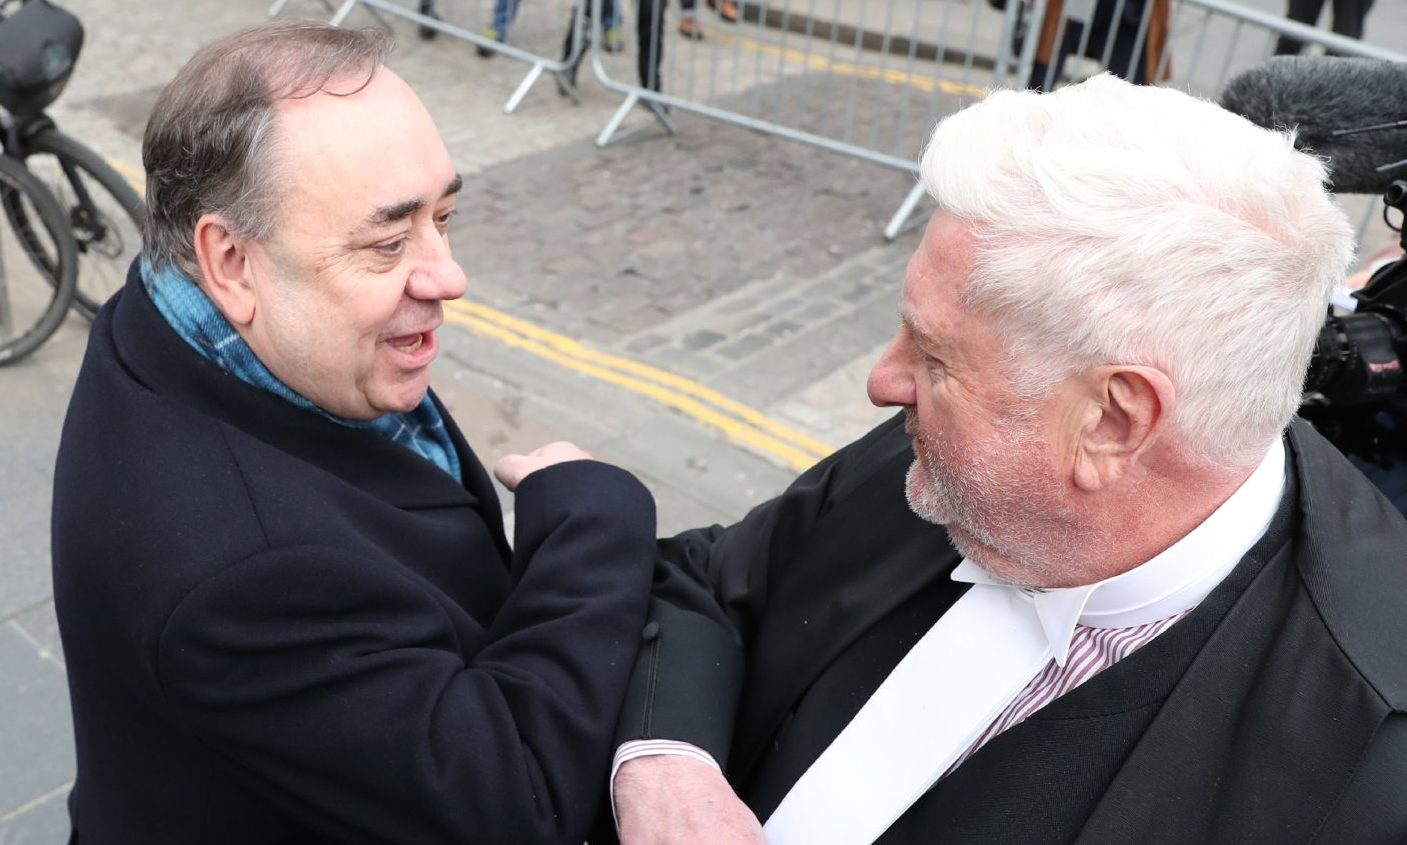 Alex Salmond elbow bumps Gordon Jackson QC as he leaves the High Court in Edinburgh.